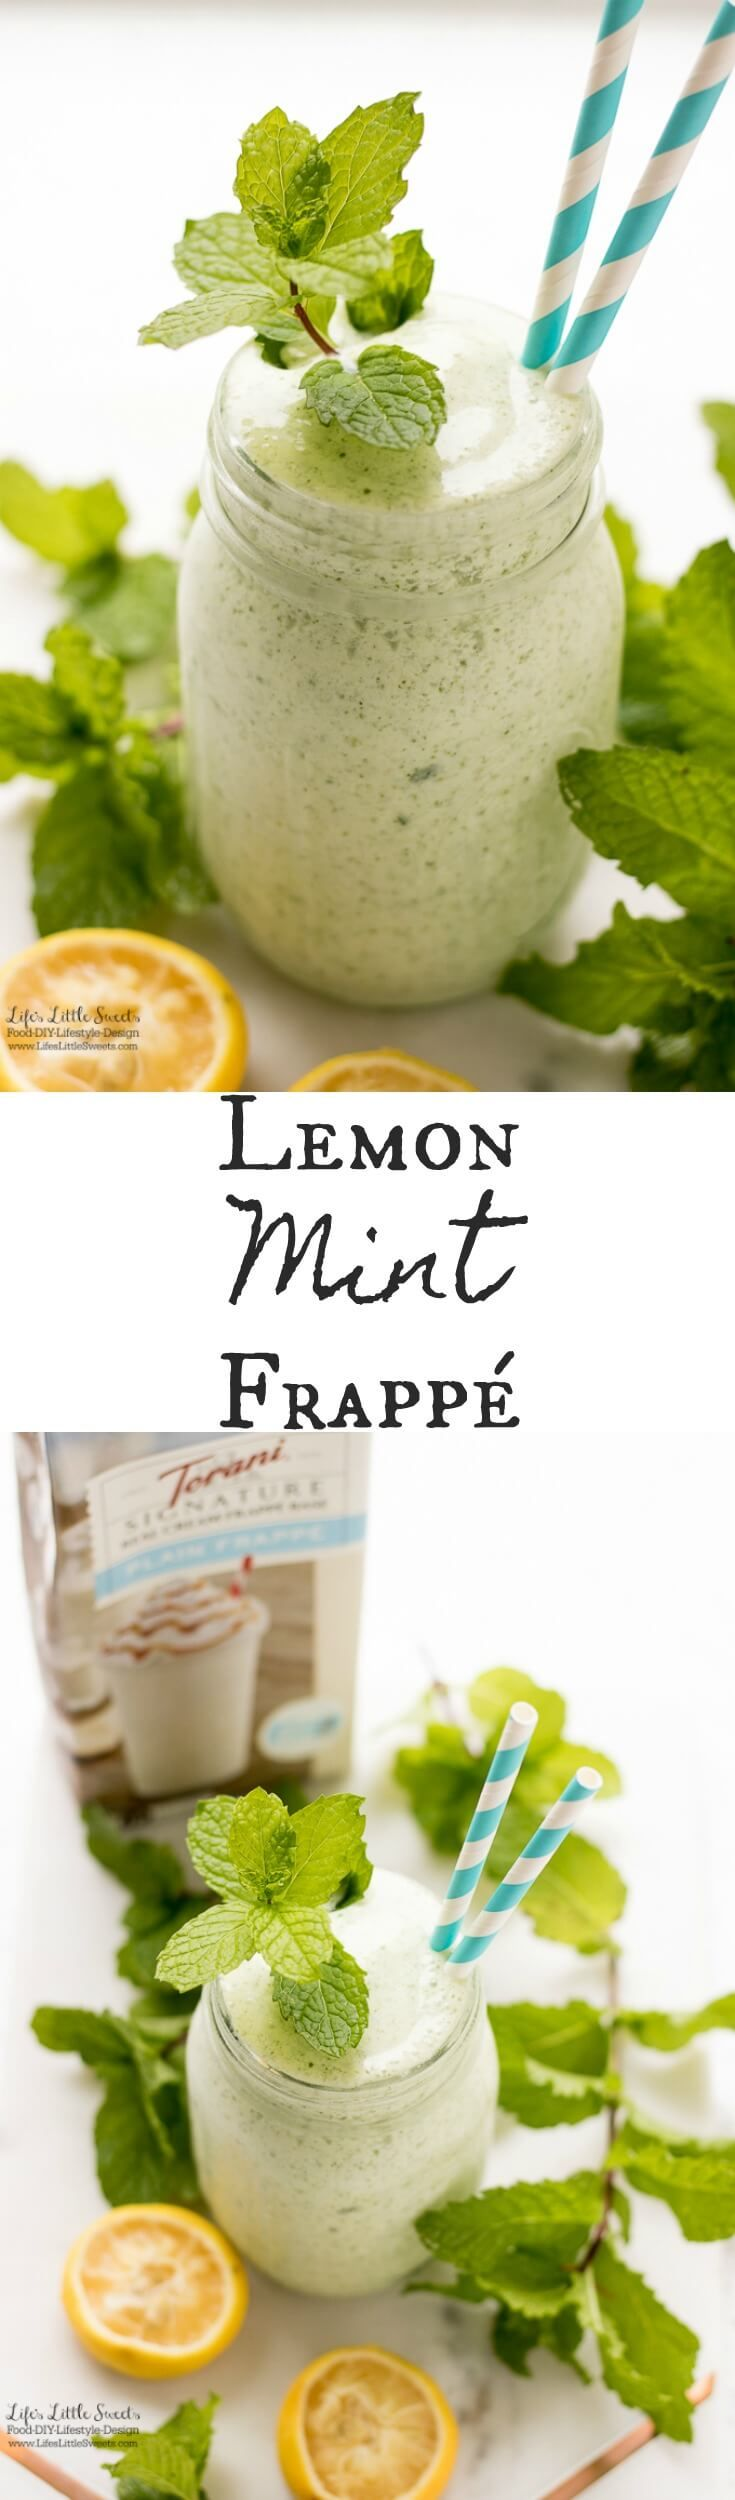 Lemon Mint Frappé is an frozen, refreshing, sweet and tart drink that will make your taste buds happy. This recipe uses Torani Real Cream Plain Frappé Mix. #MyToraniFrappe #CollectiveBias #ad #drink #mint #lemon #freshmint #Torani #frappe #ice